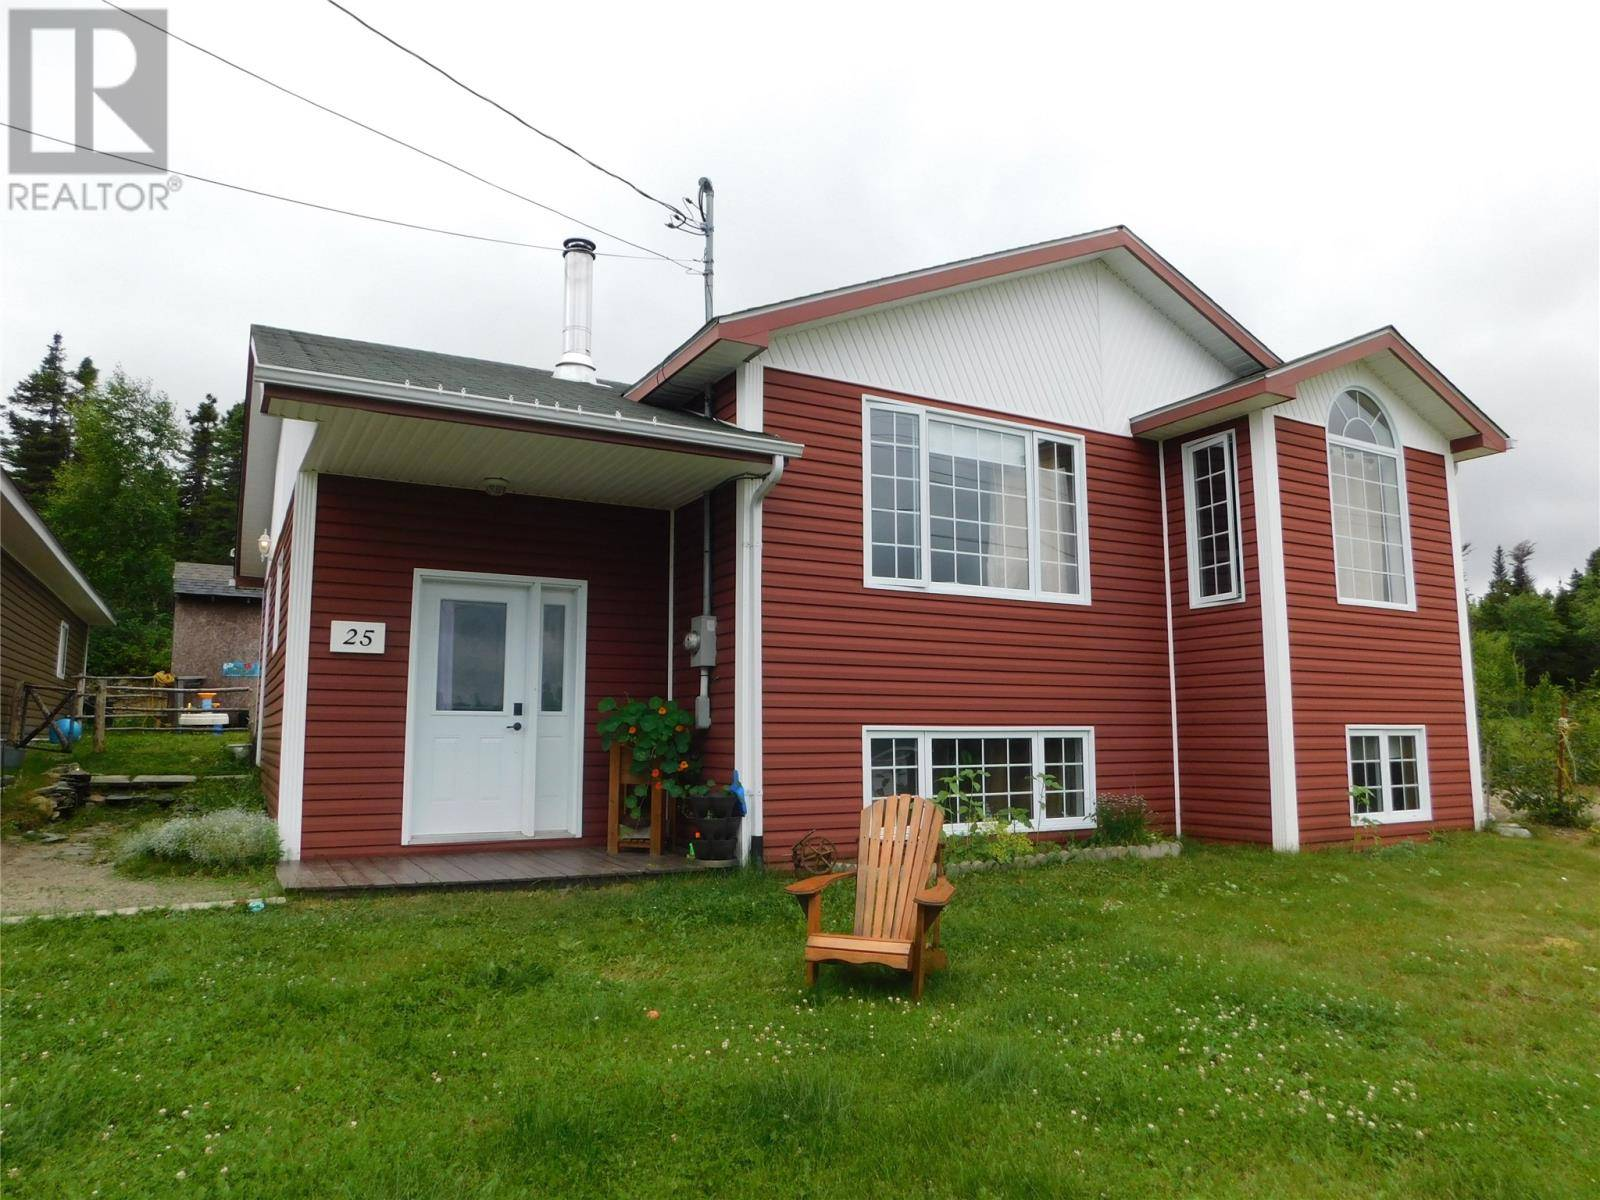 House for sale at 25 Clearview Cres Glovertown Newfoundland - MLS: 1211331